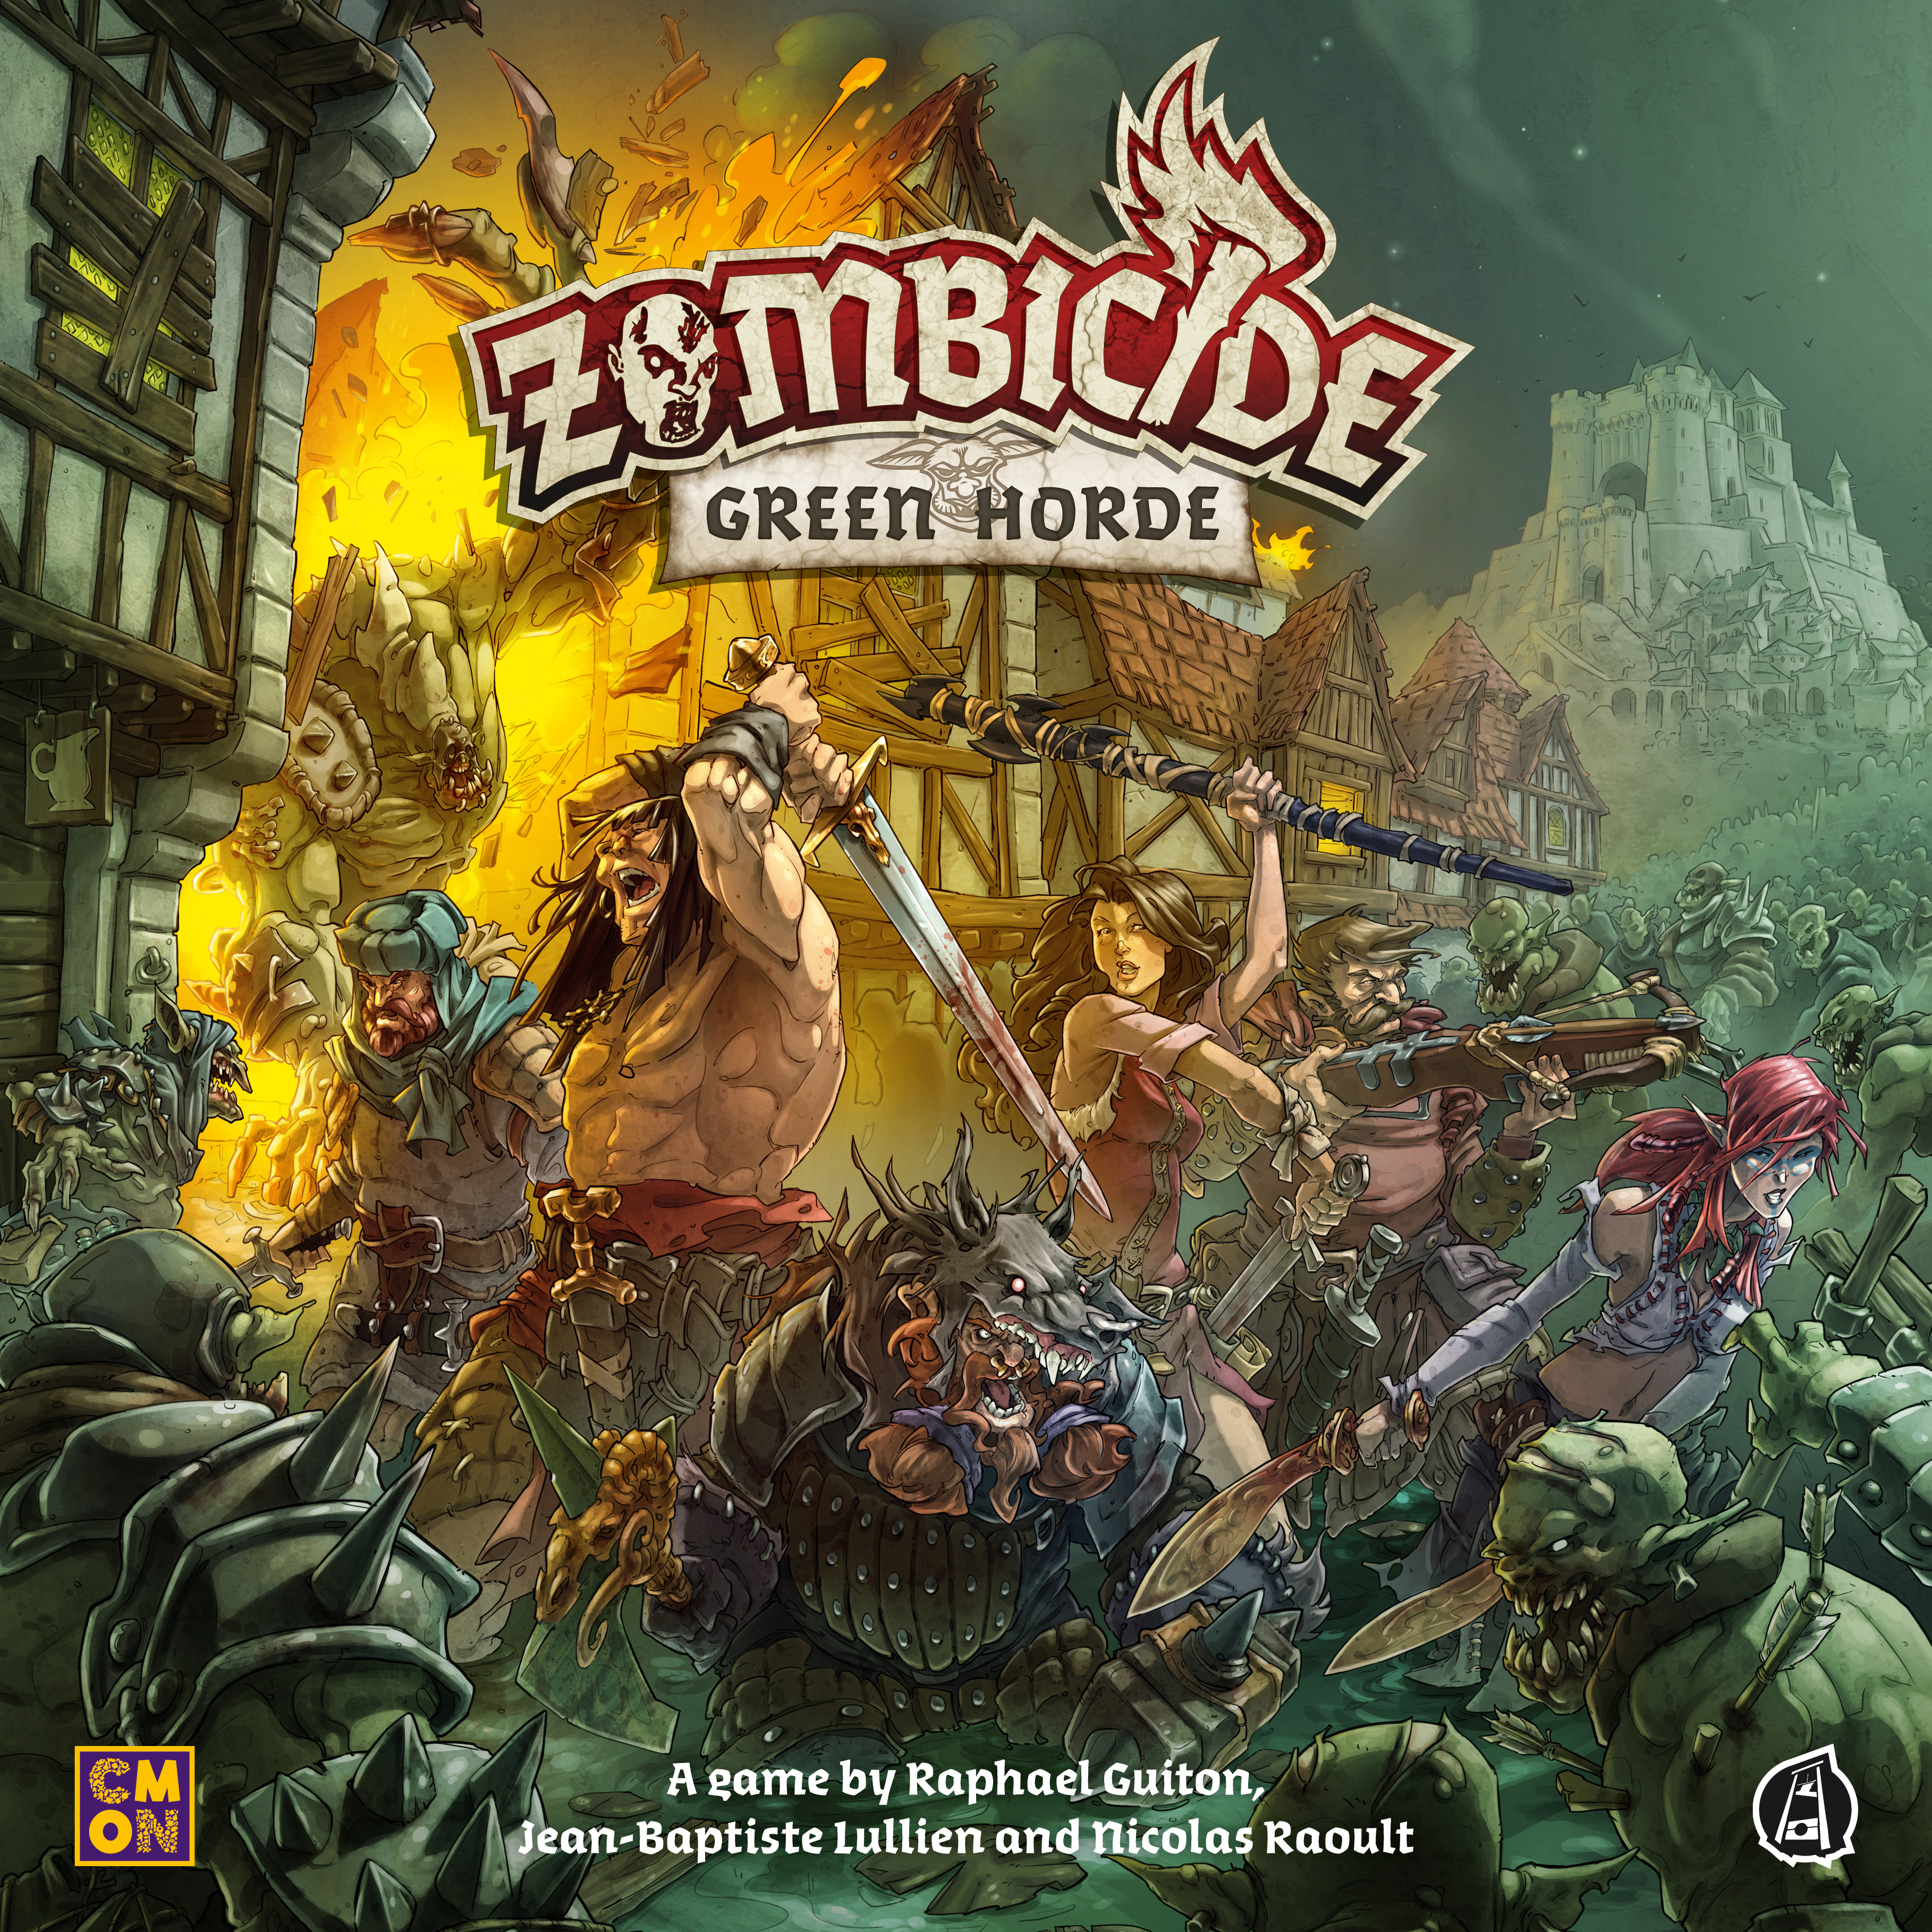 GTM #219 - Zombicide: Green Horde: Emerald Waves of Undead